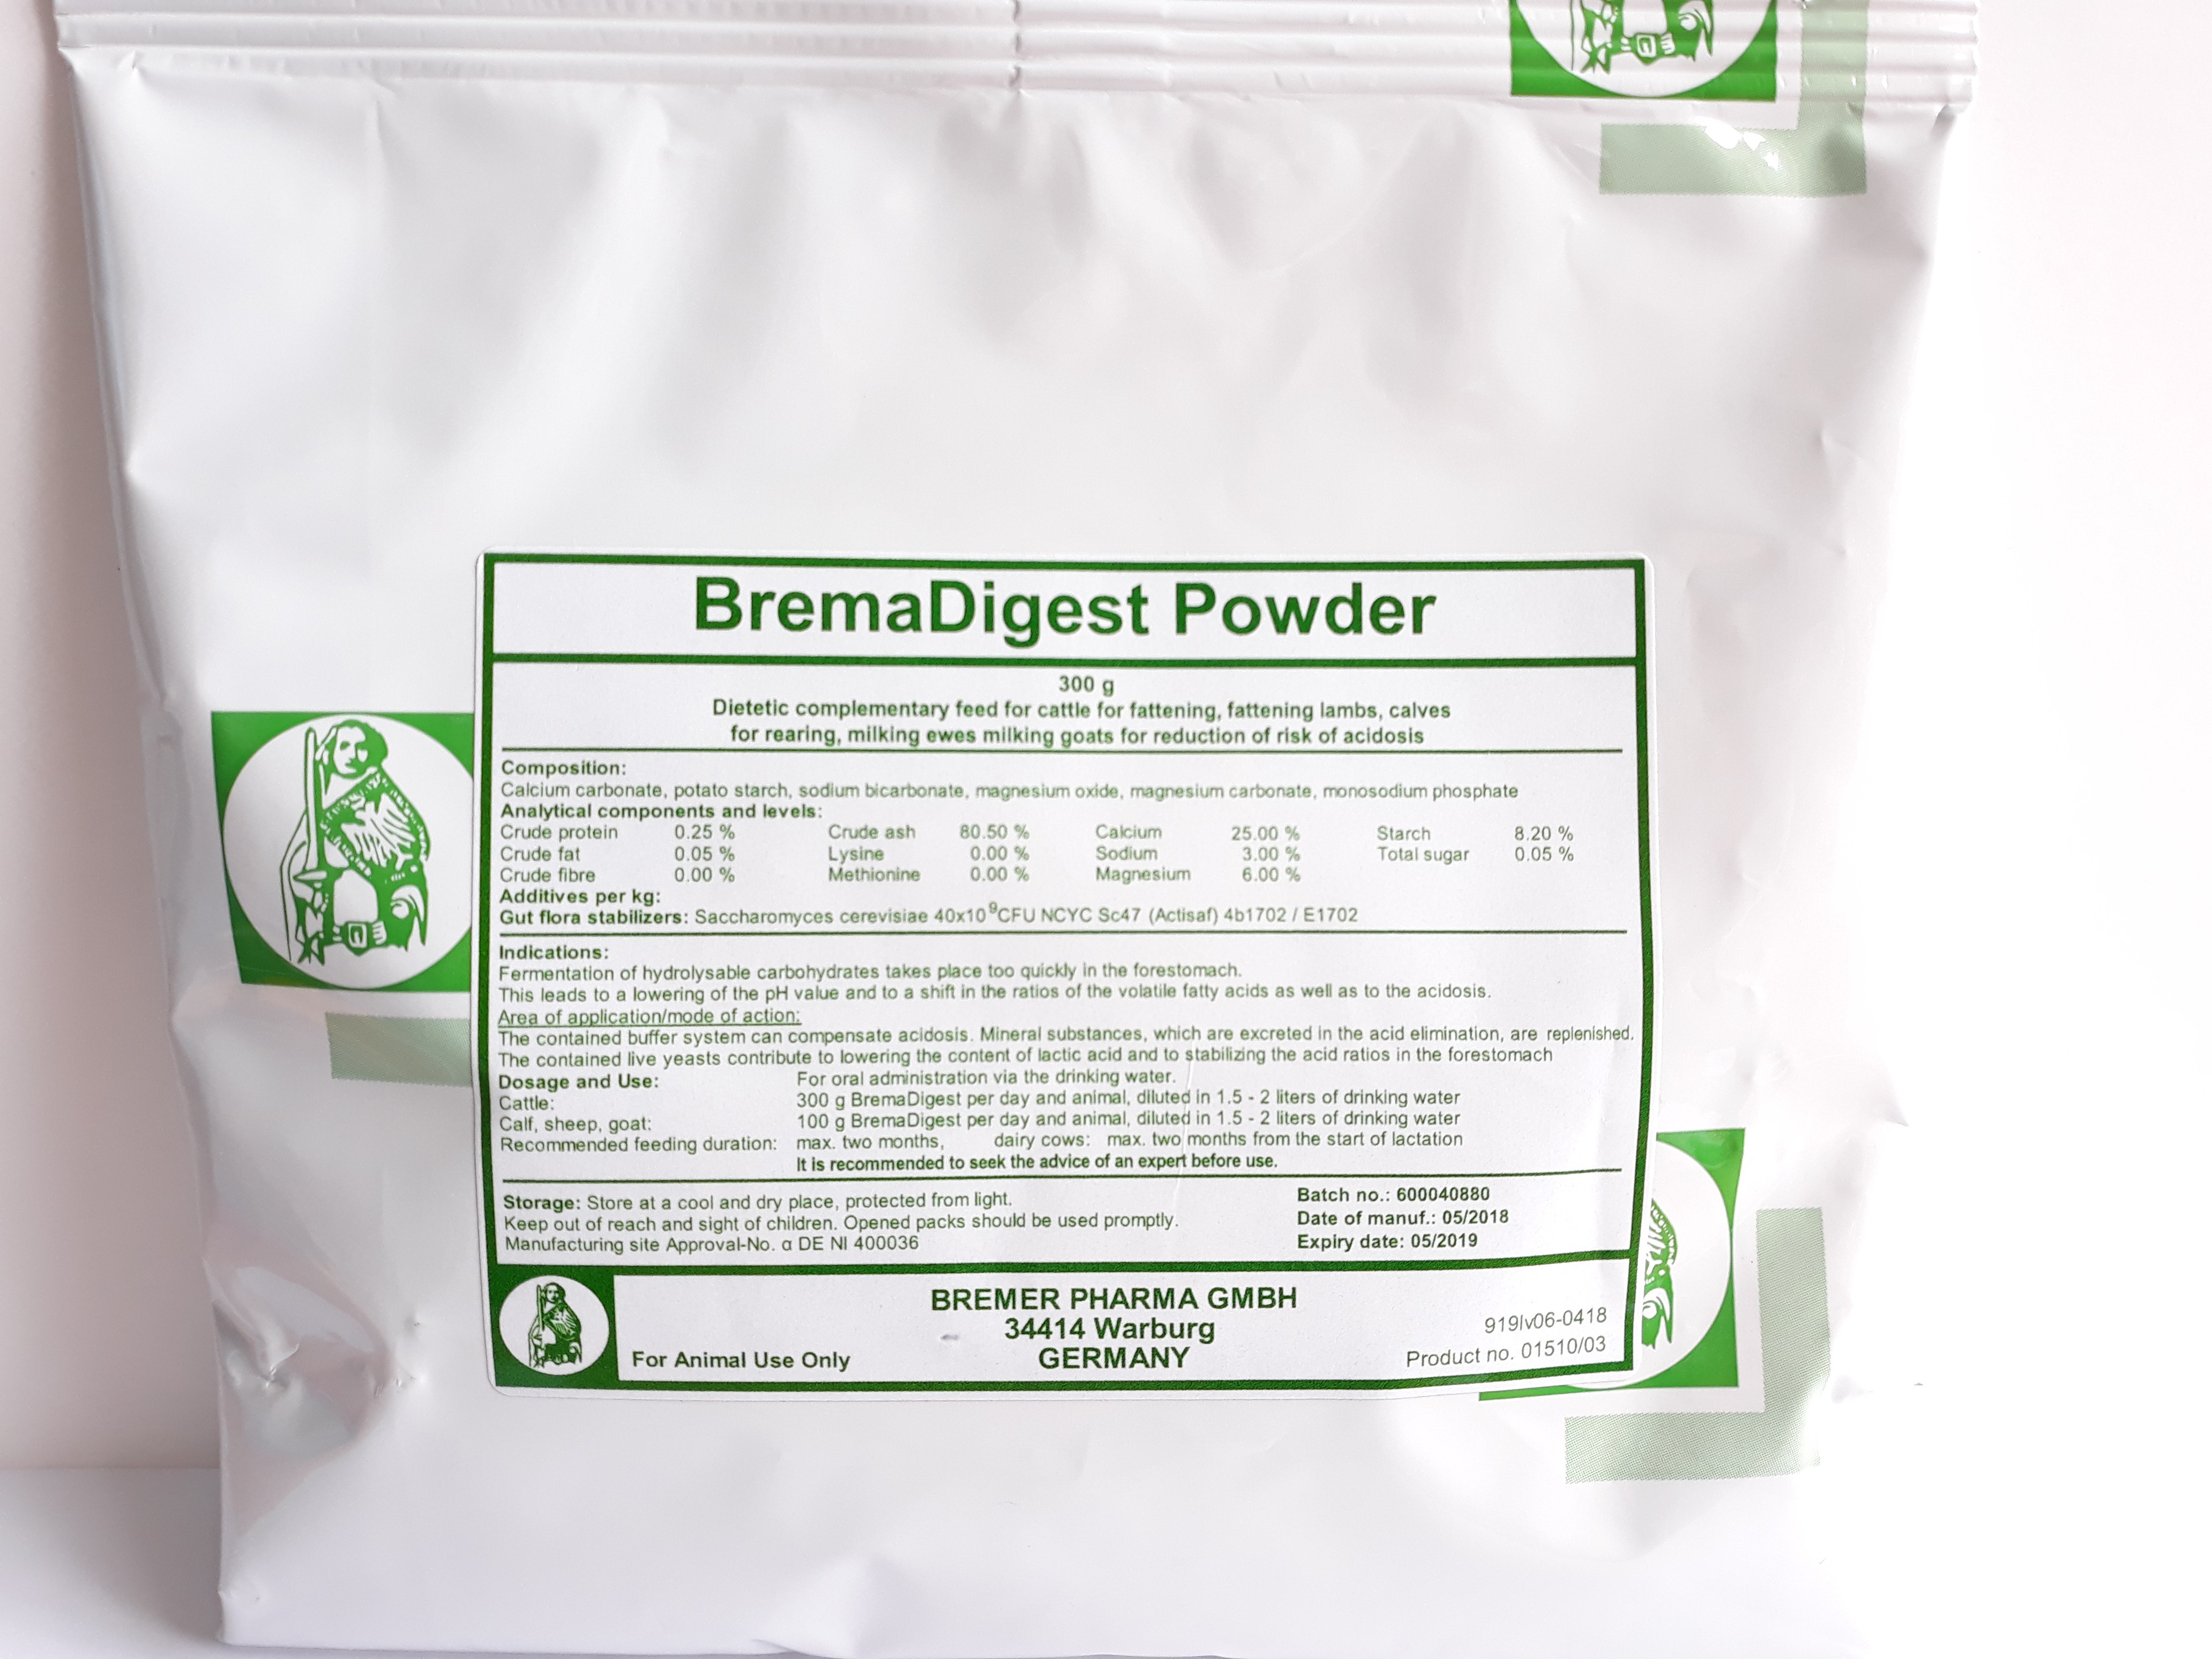 BremaDigest Powder